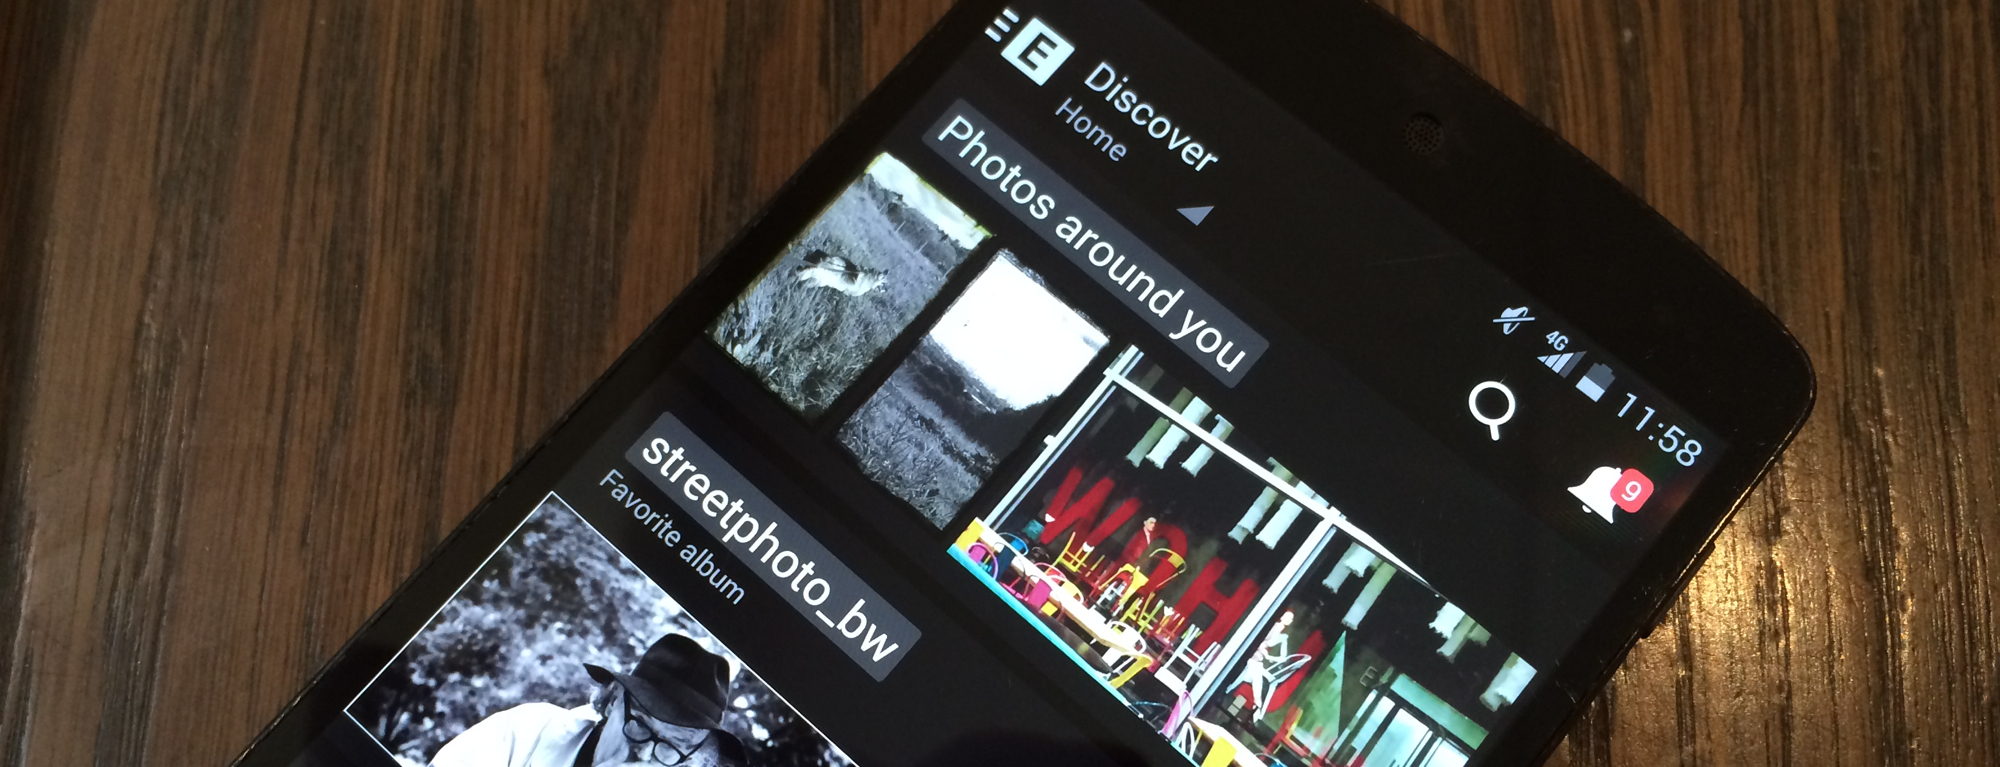 EyeEm Revamps its Android Photo-Sharing App